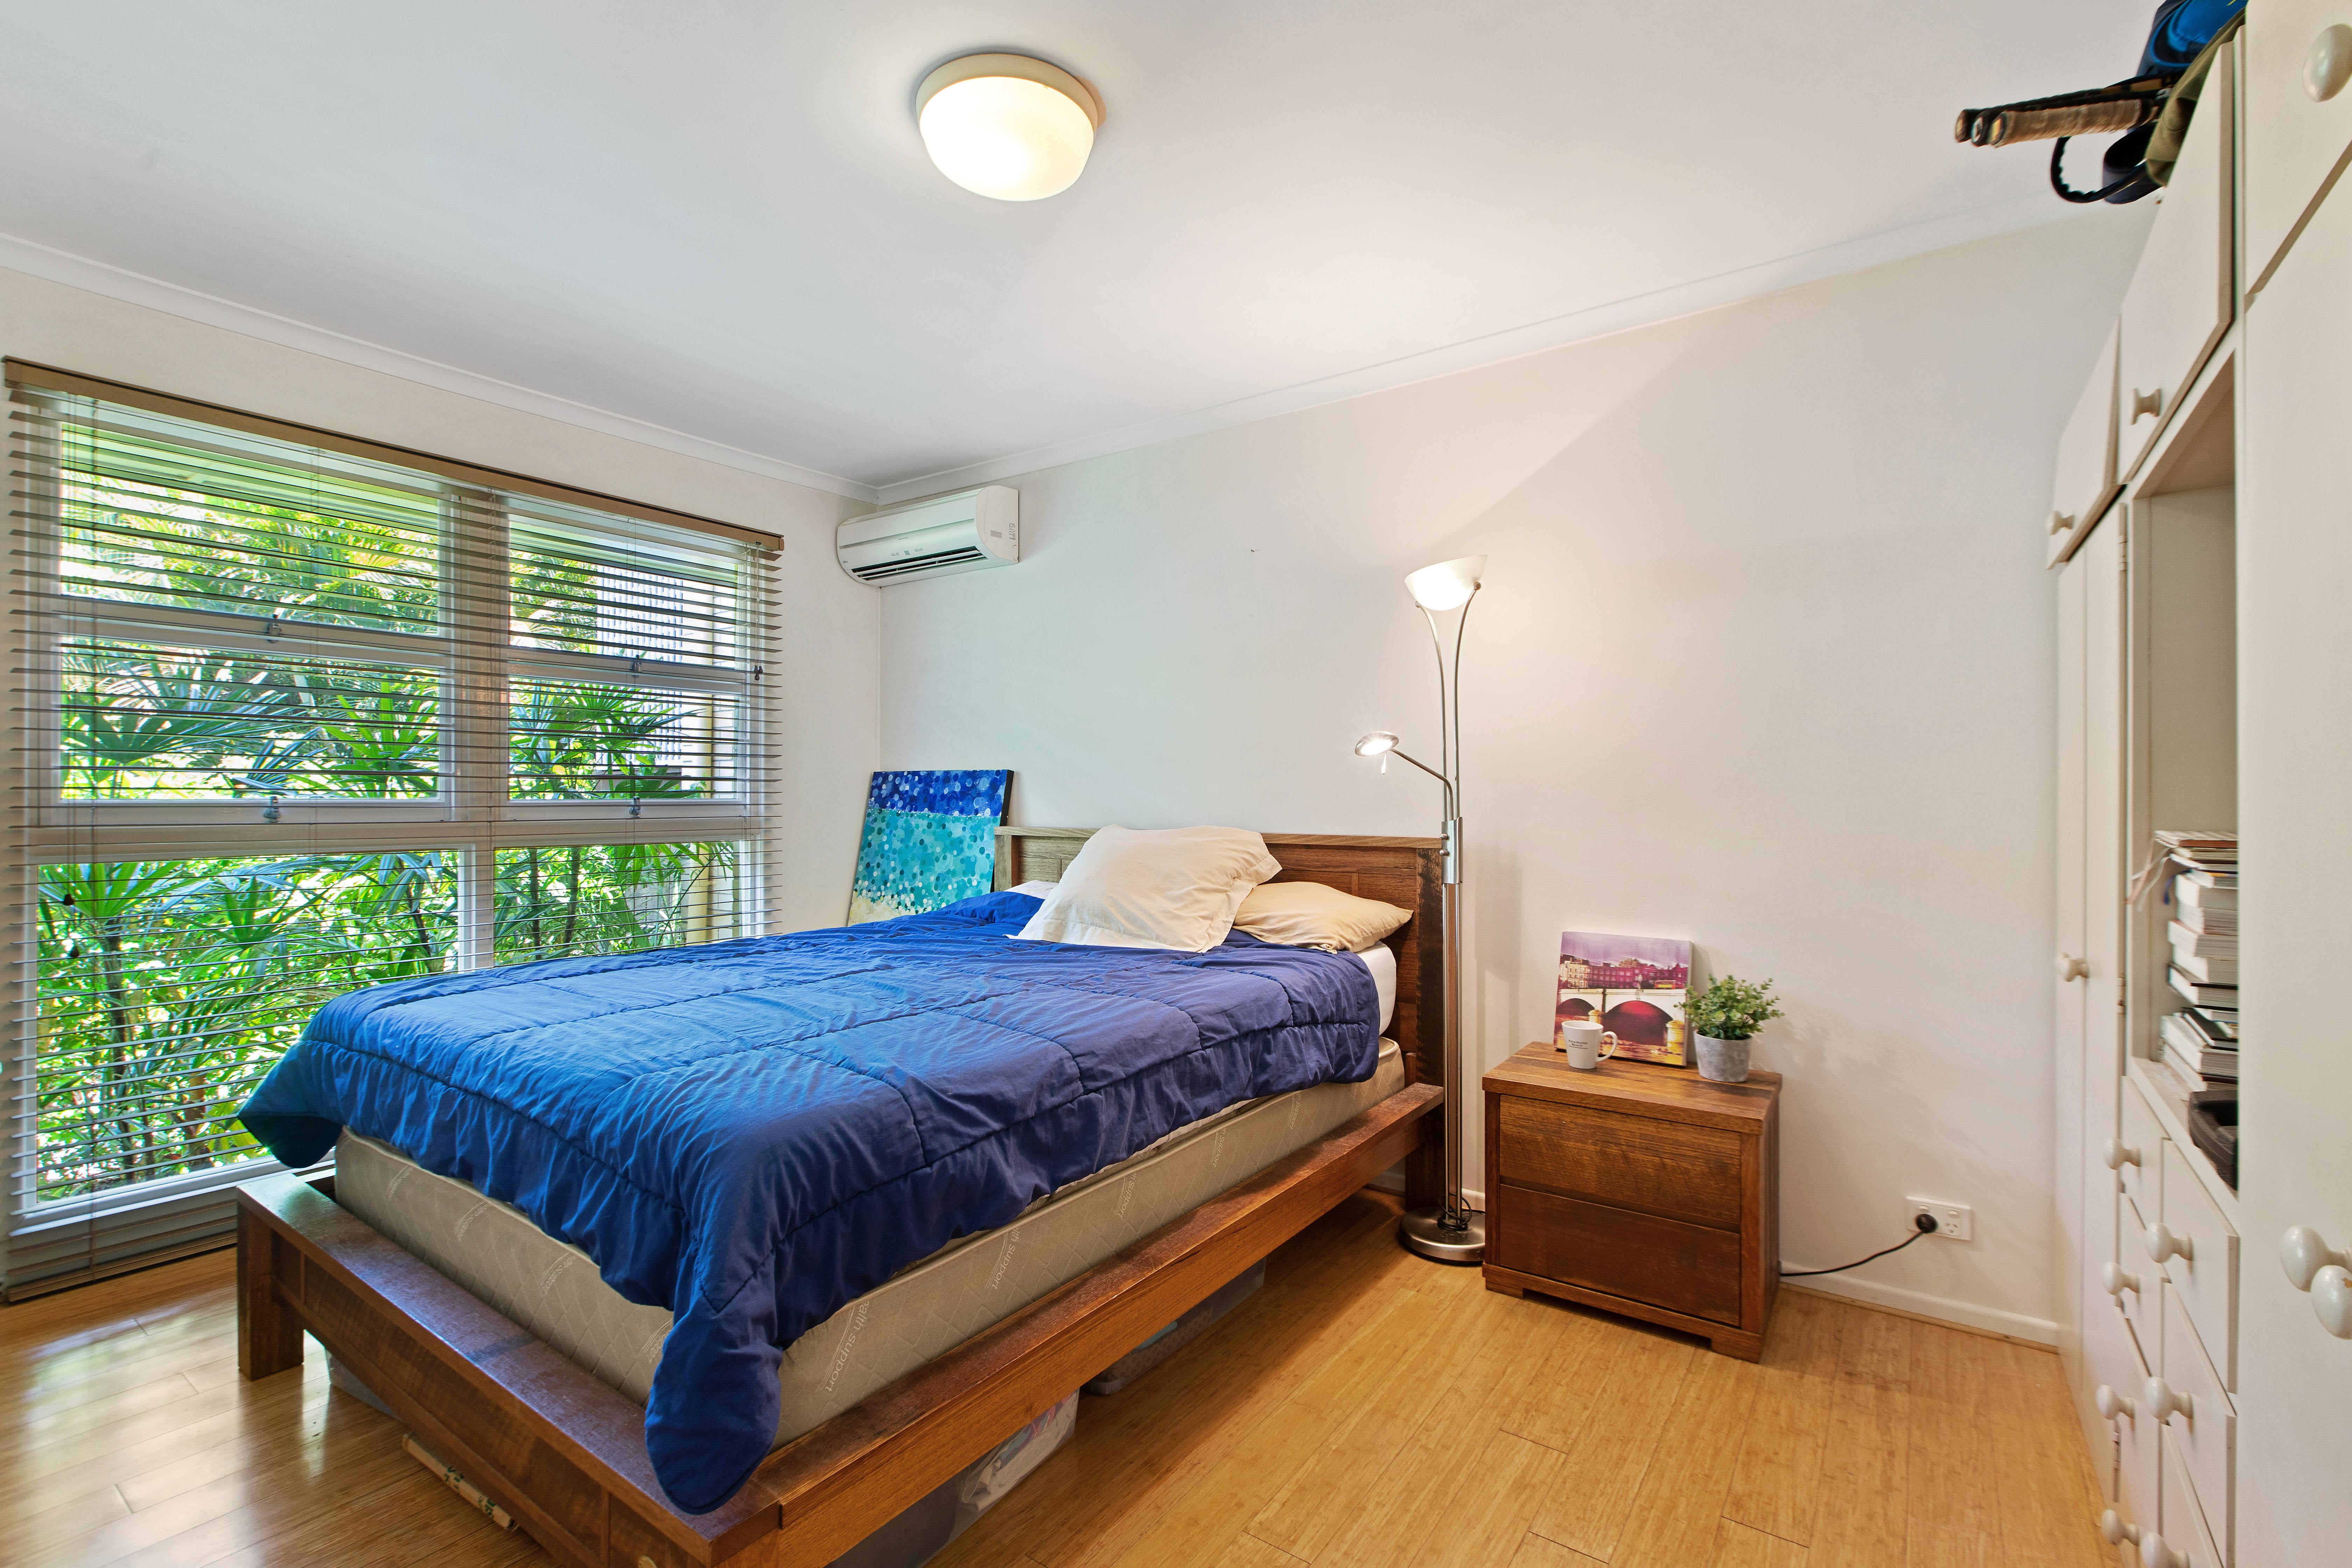 Bedroom with aircon